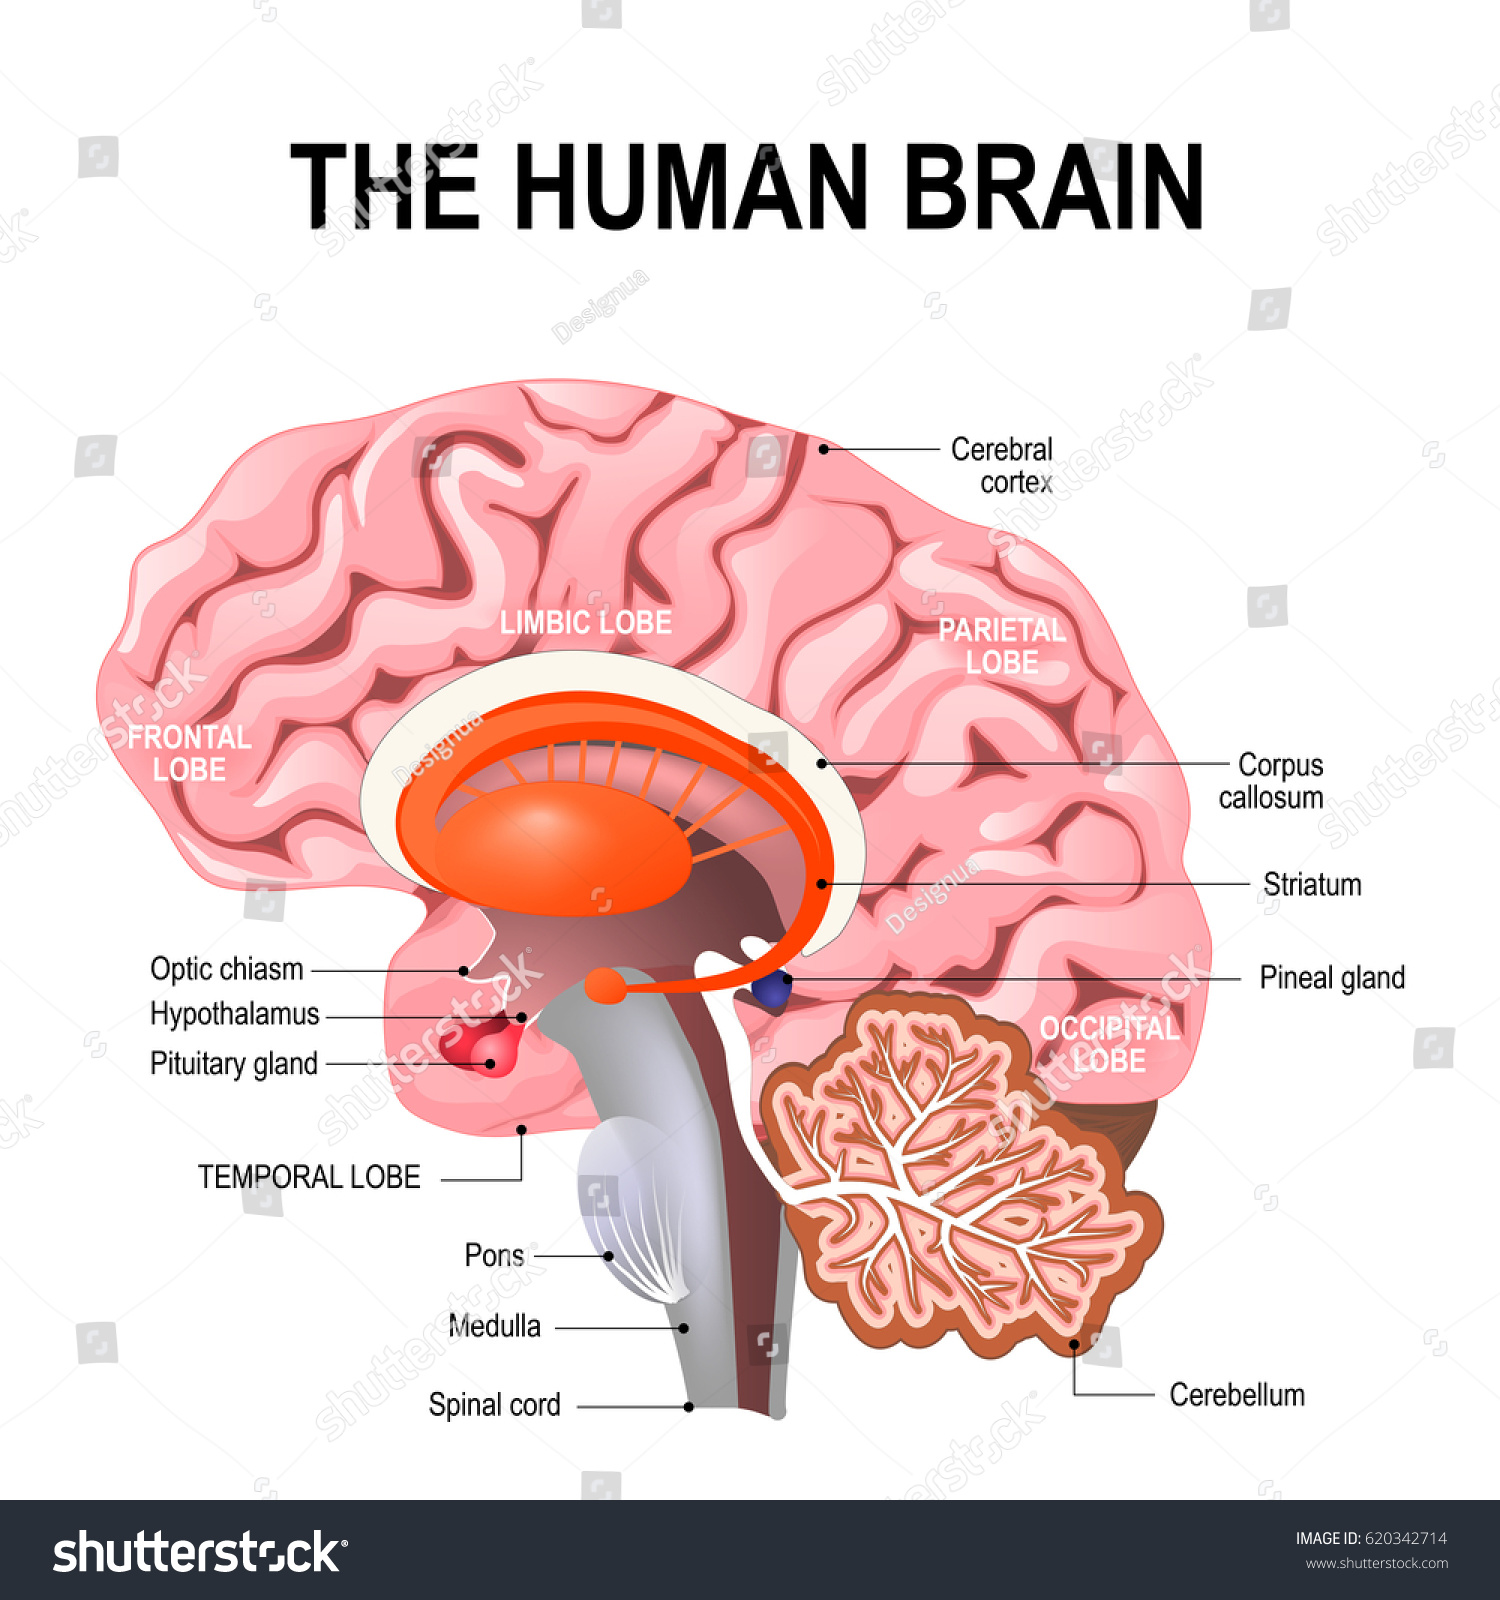 Detailed Anatomy Human Brain Illustration Showing Stock Illustration